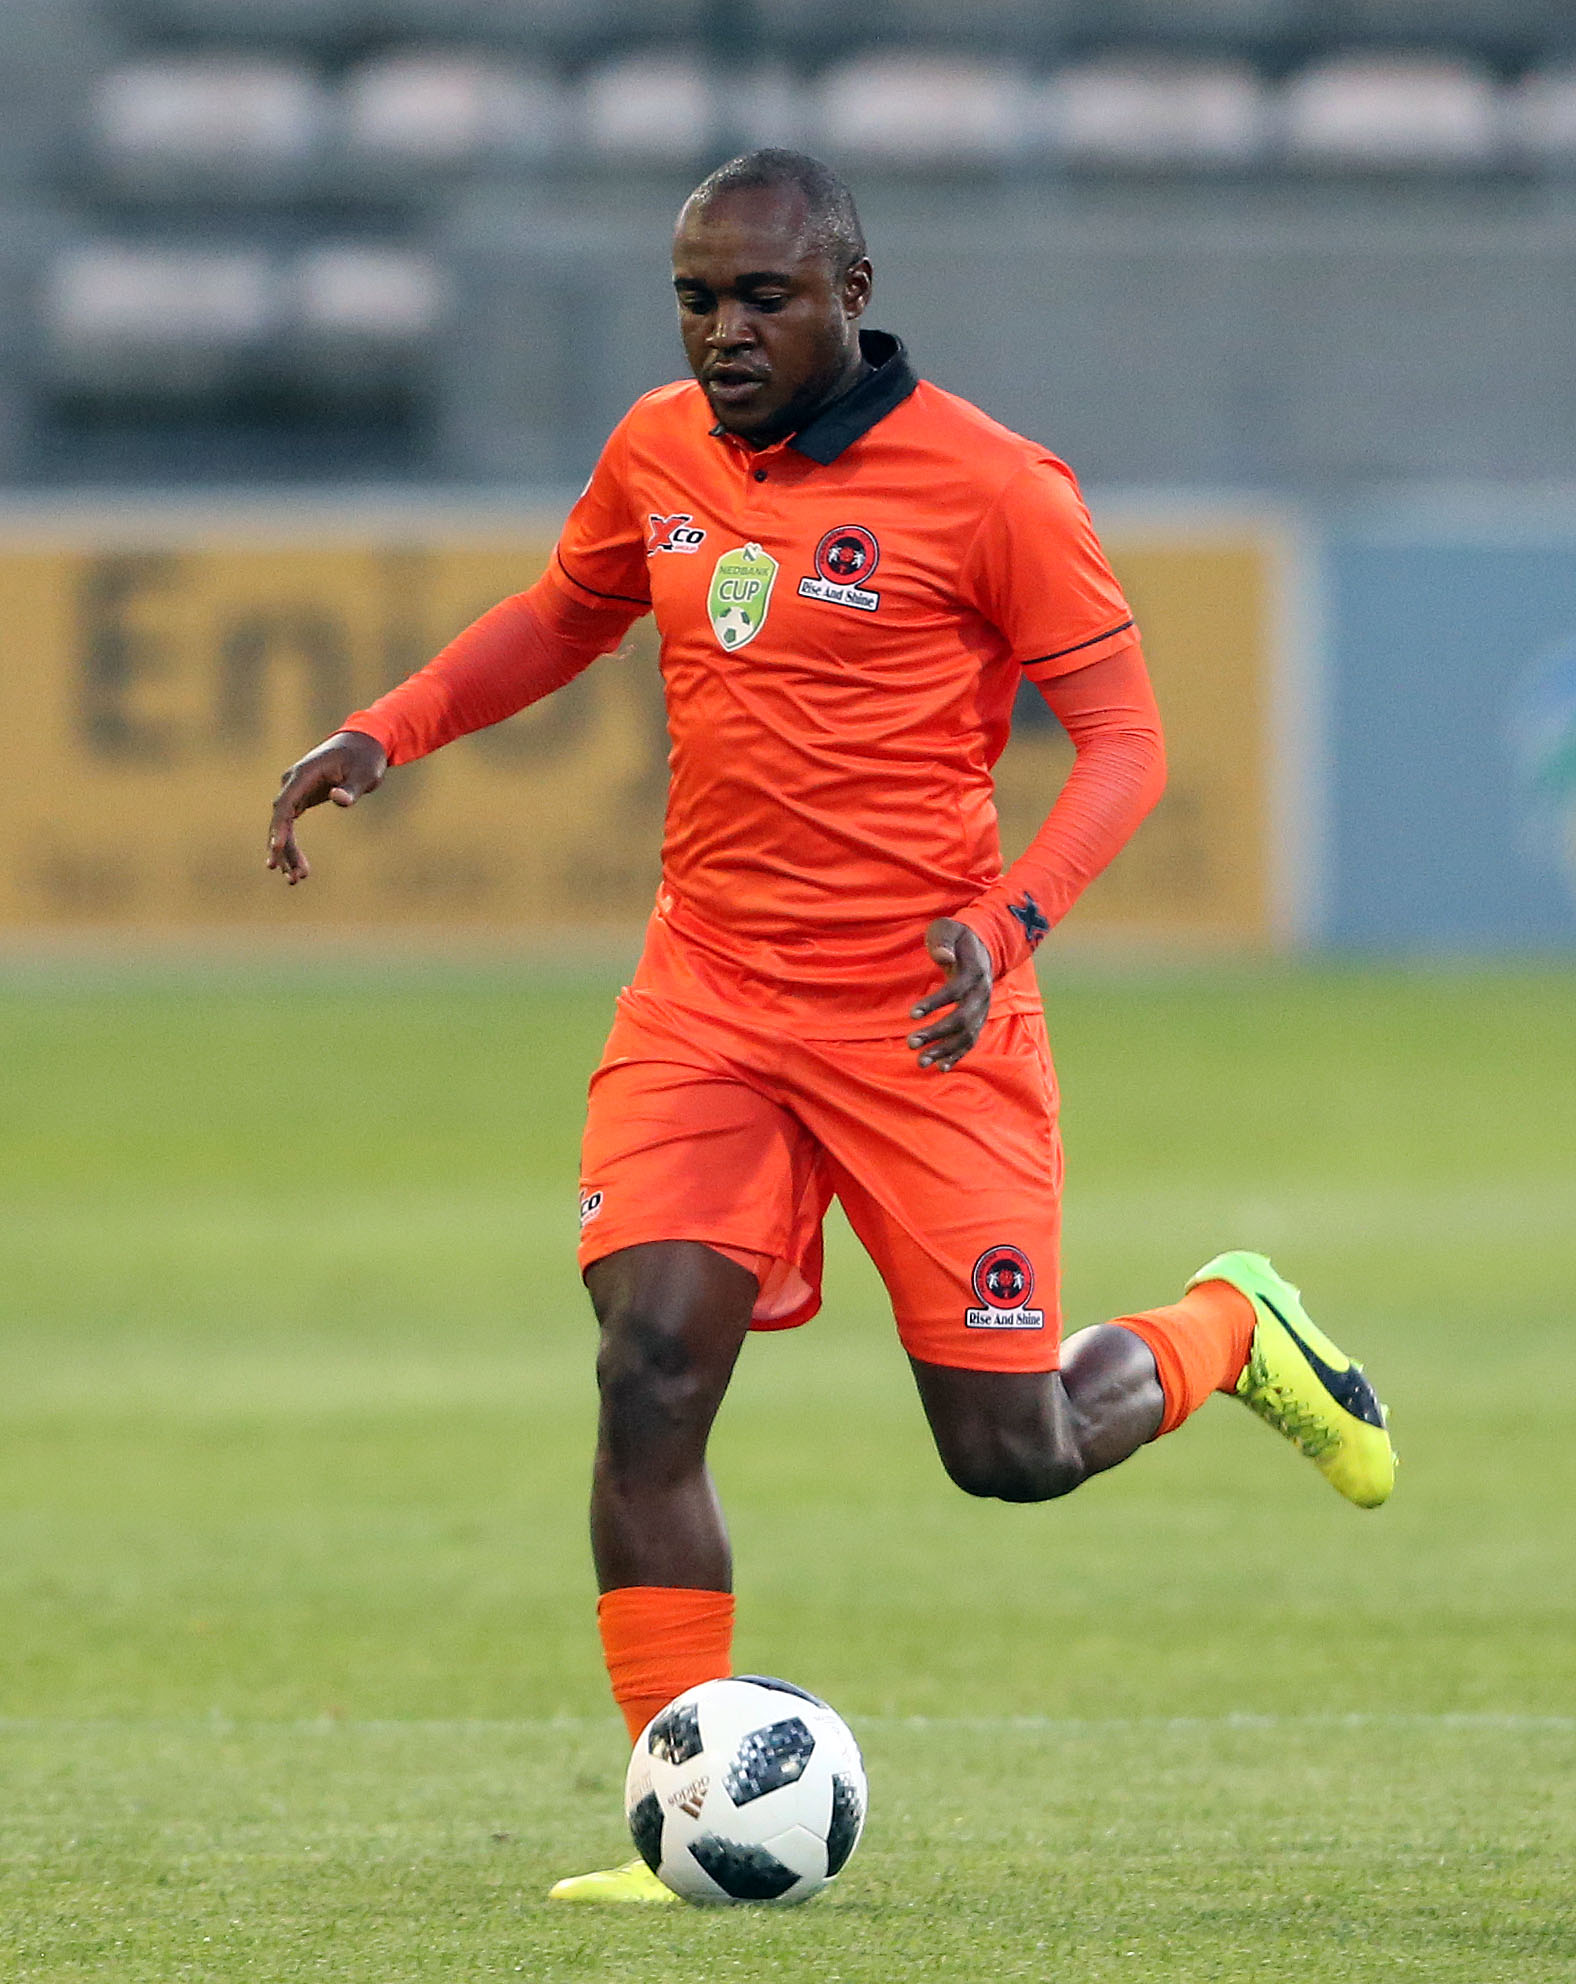 CAPE TOWN, SOUTH AFRICA - FEBRUARY 07: Mogau Tshehla of Polokwane City FC during the Nedbank Cup, Last 32 match between Ubuntu Cape Town and Polokwane City at Athlone Stadium on February 07, 2018 in Cape Town, South Africa. (Photo by Carl Fourie/Gallo Images)